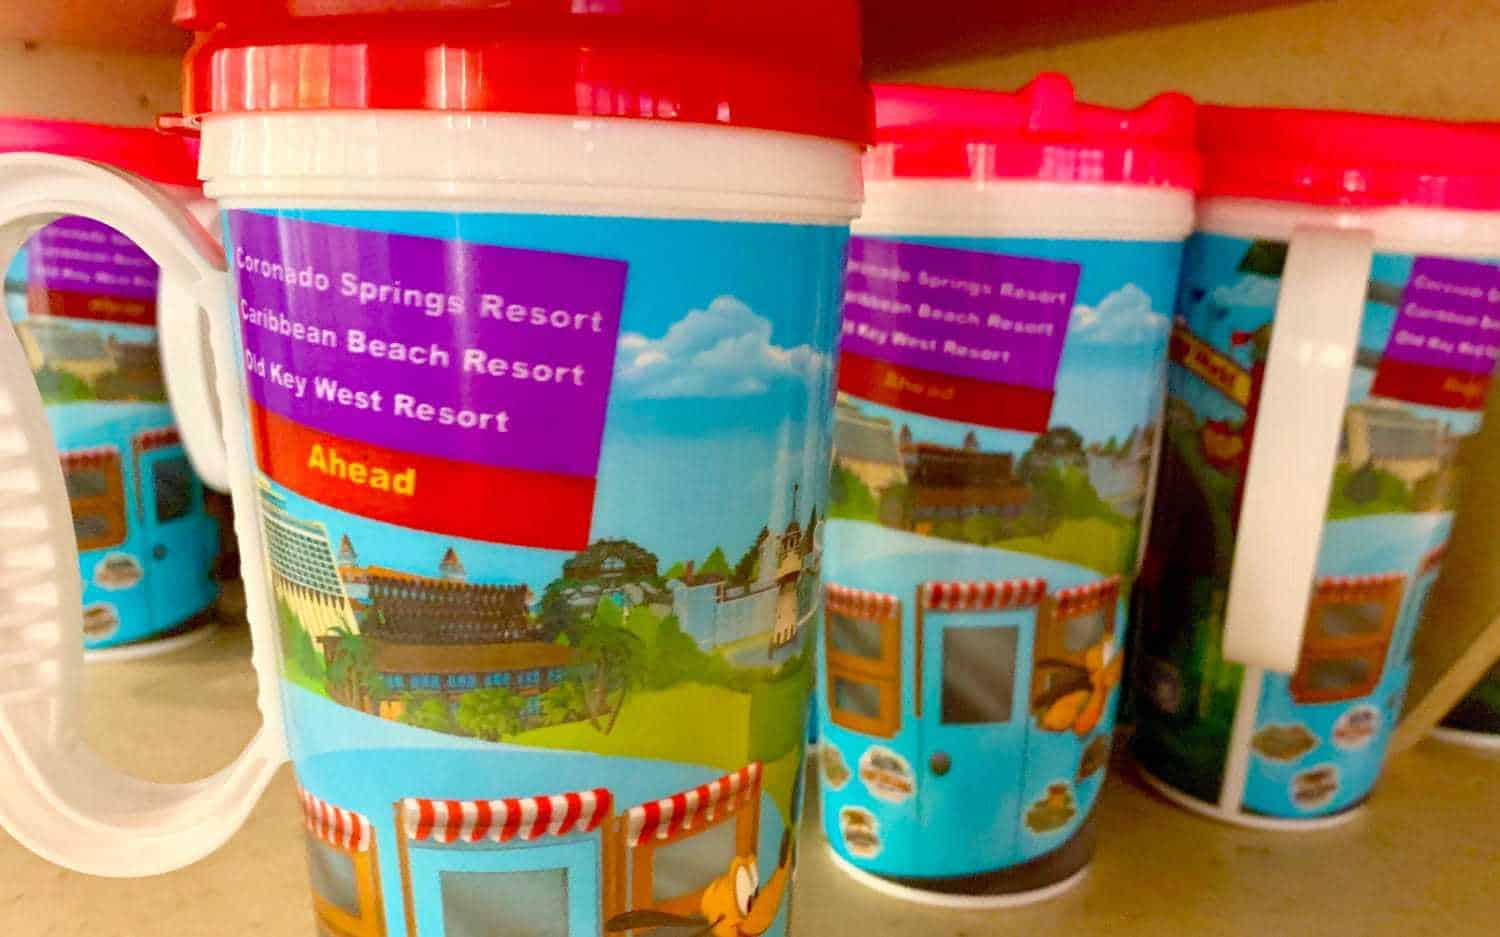 Disney World Refillable Cups: Are RapidFill Mugs Necessary? 1